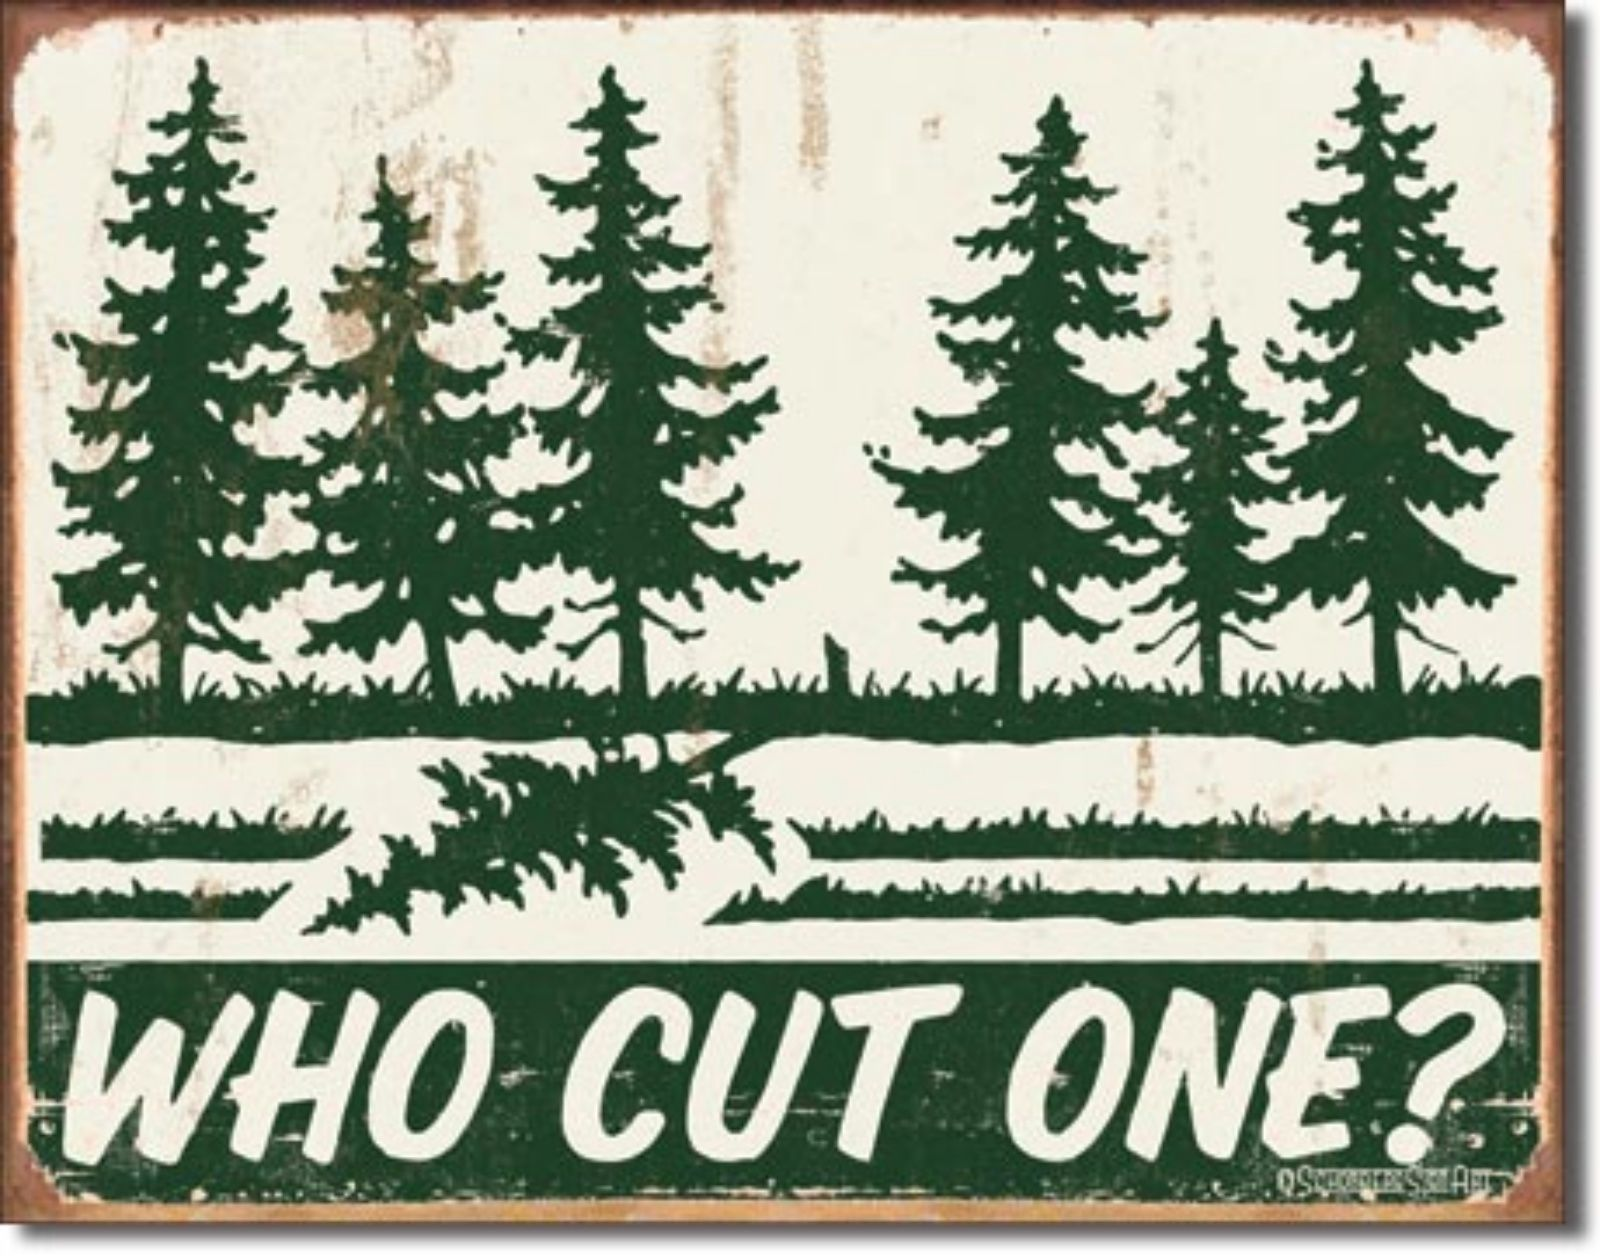 Who Cut One? Pine Tree  Metal Sign Tin New Vintage Style USA #1486